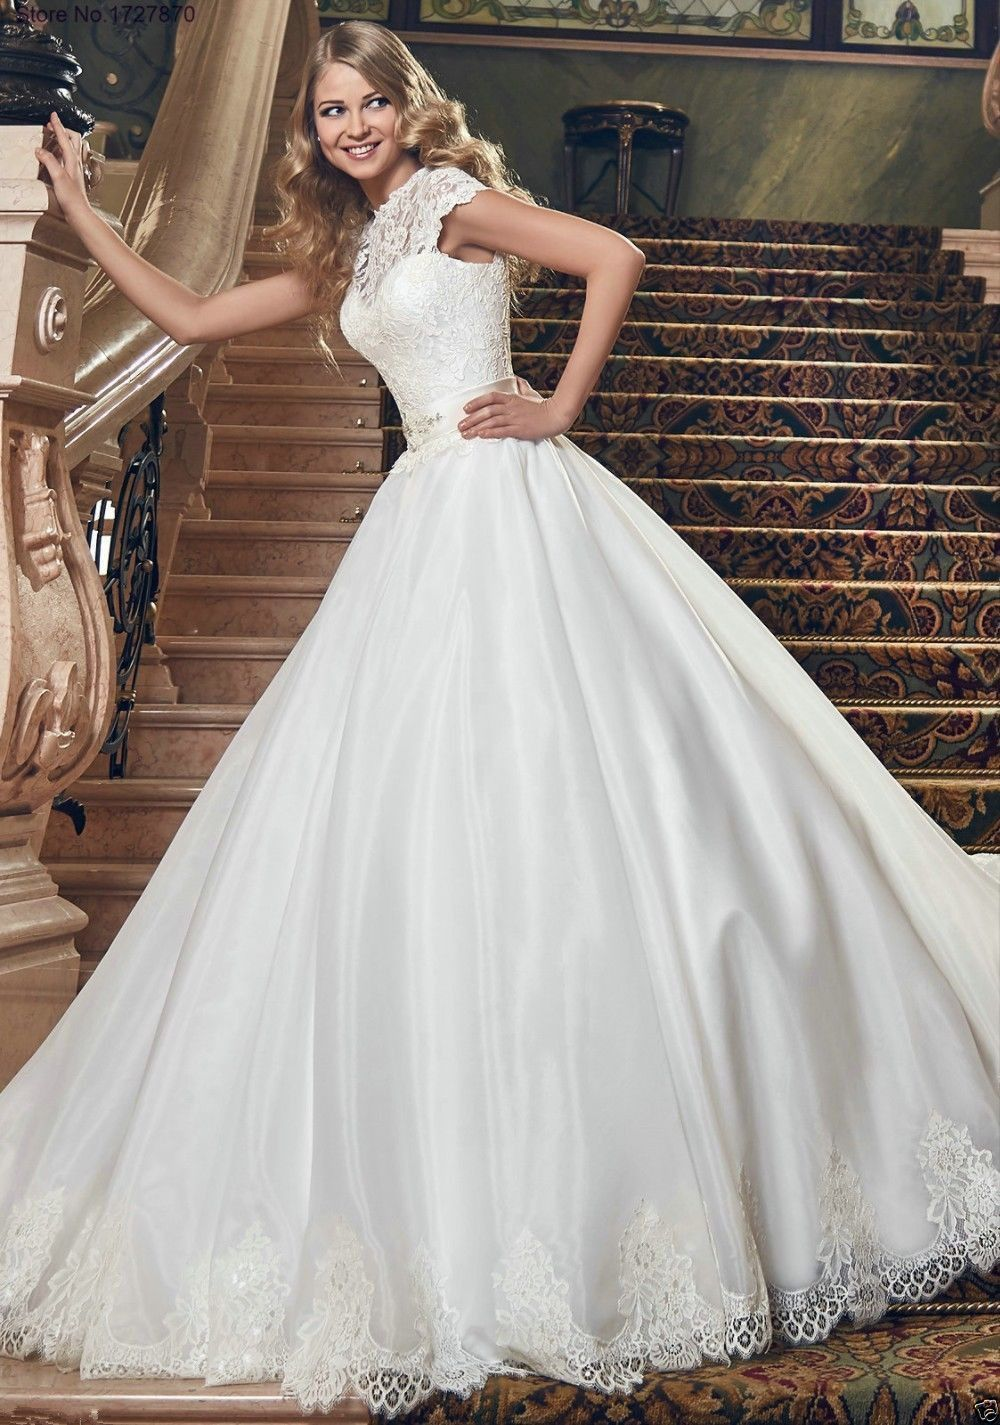 Wedding dress for older bride  Gorgeous WhiteIvory Appliques Wedding Dresses  Aline Bridal